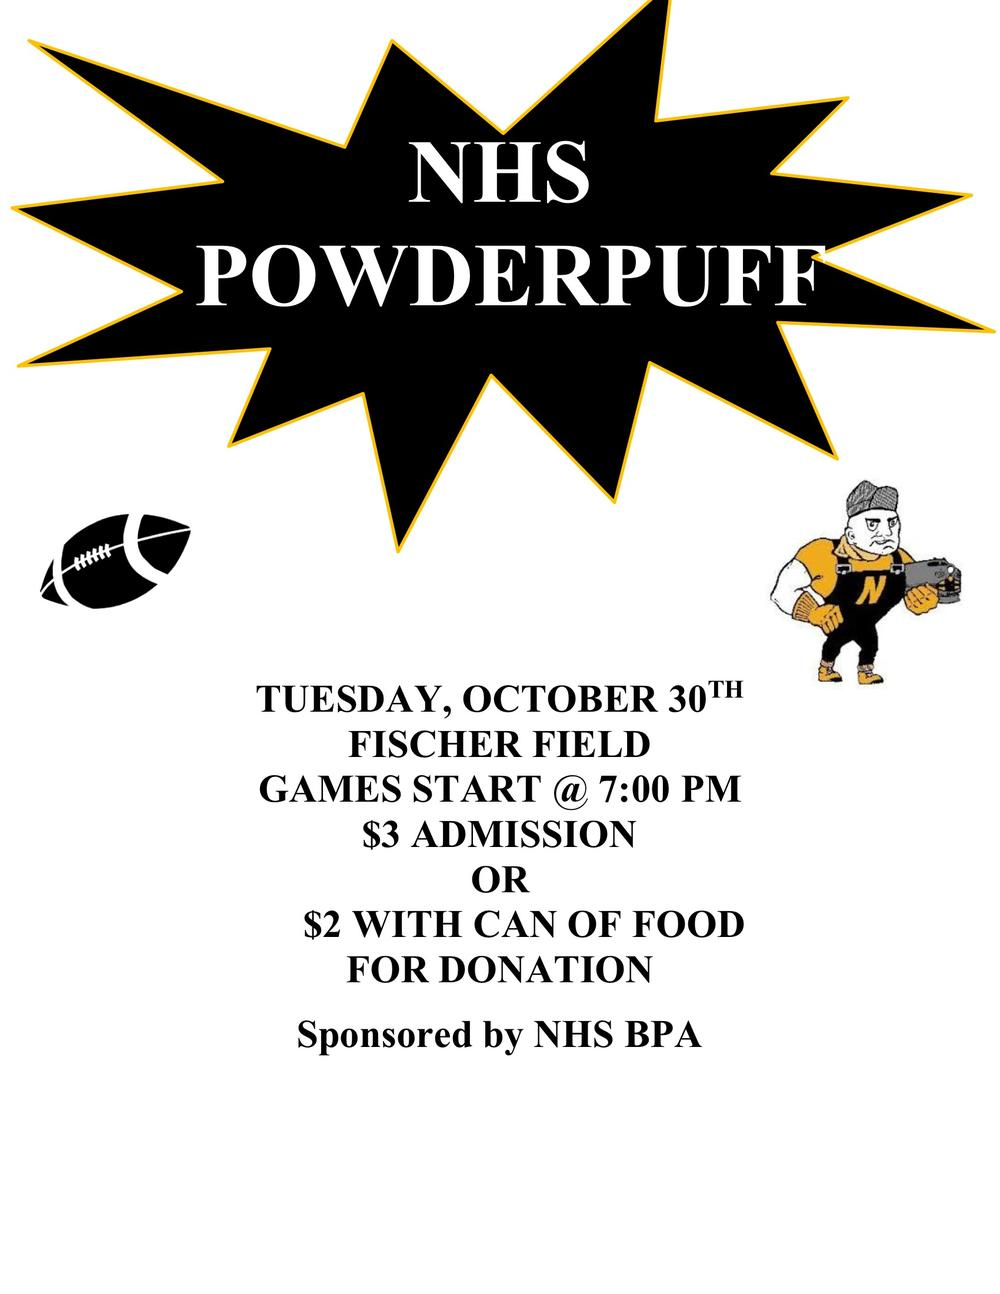 NHS Powderpuff